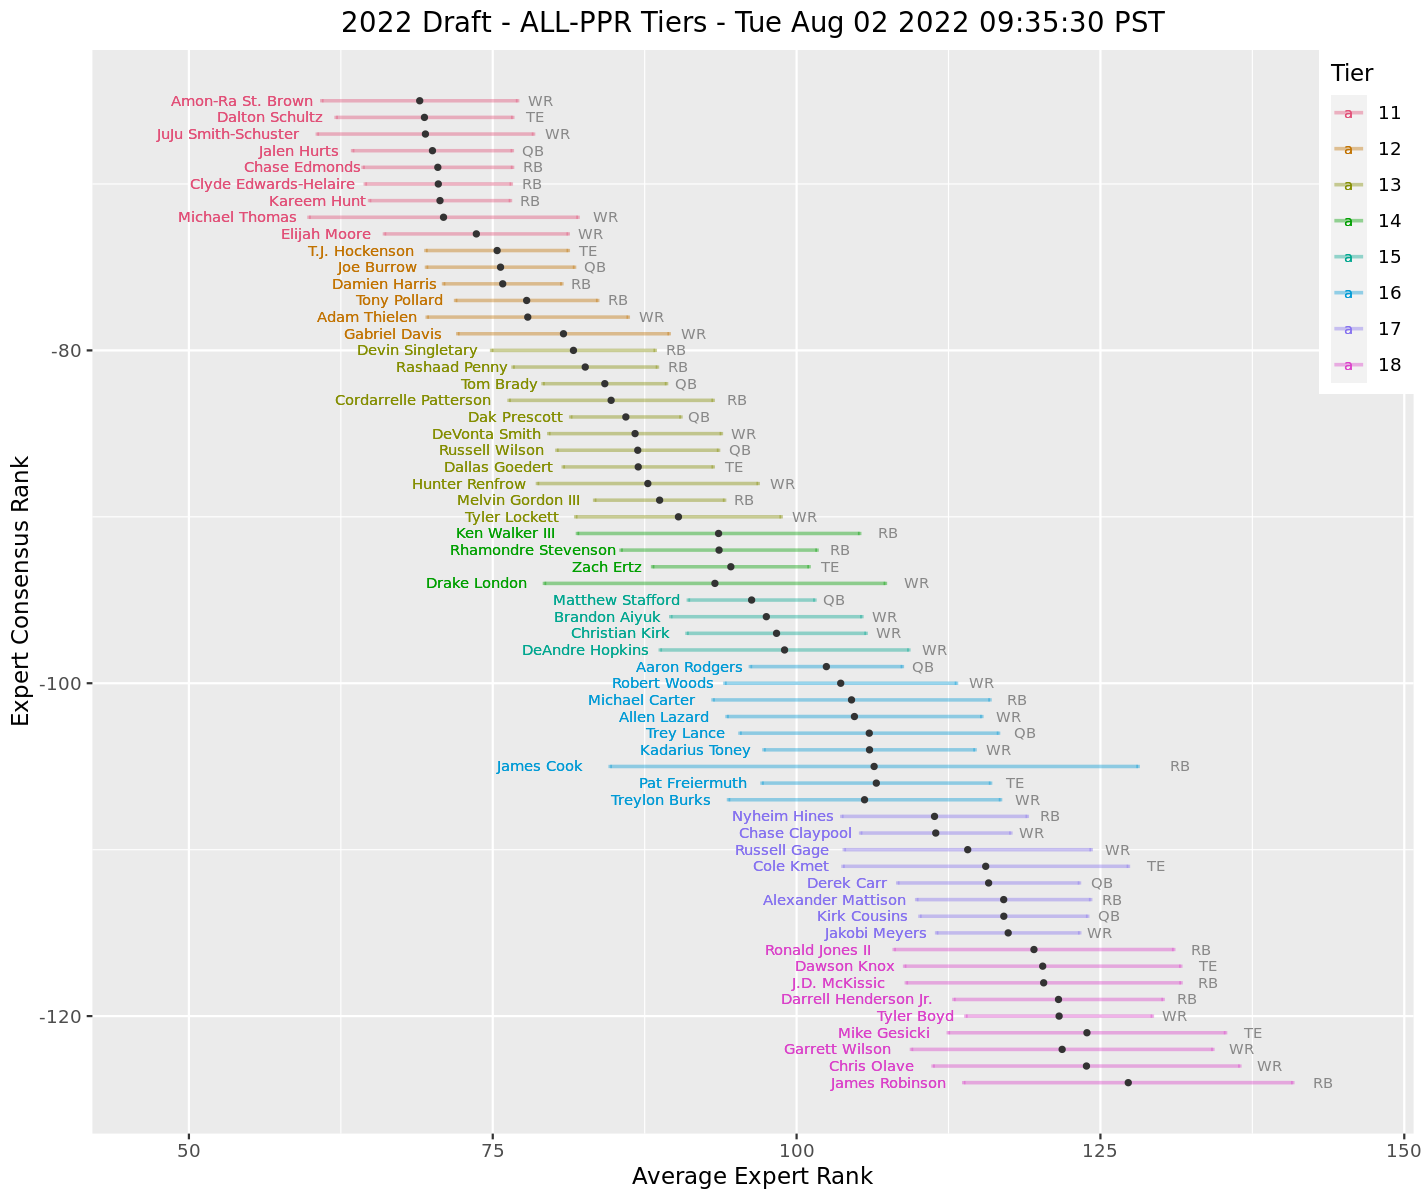 Data Math Etc Ppr Draft Tiers Fantasy football tiers by boris chen. data math etc ppr draft tiers